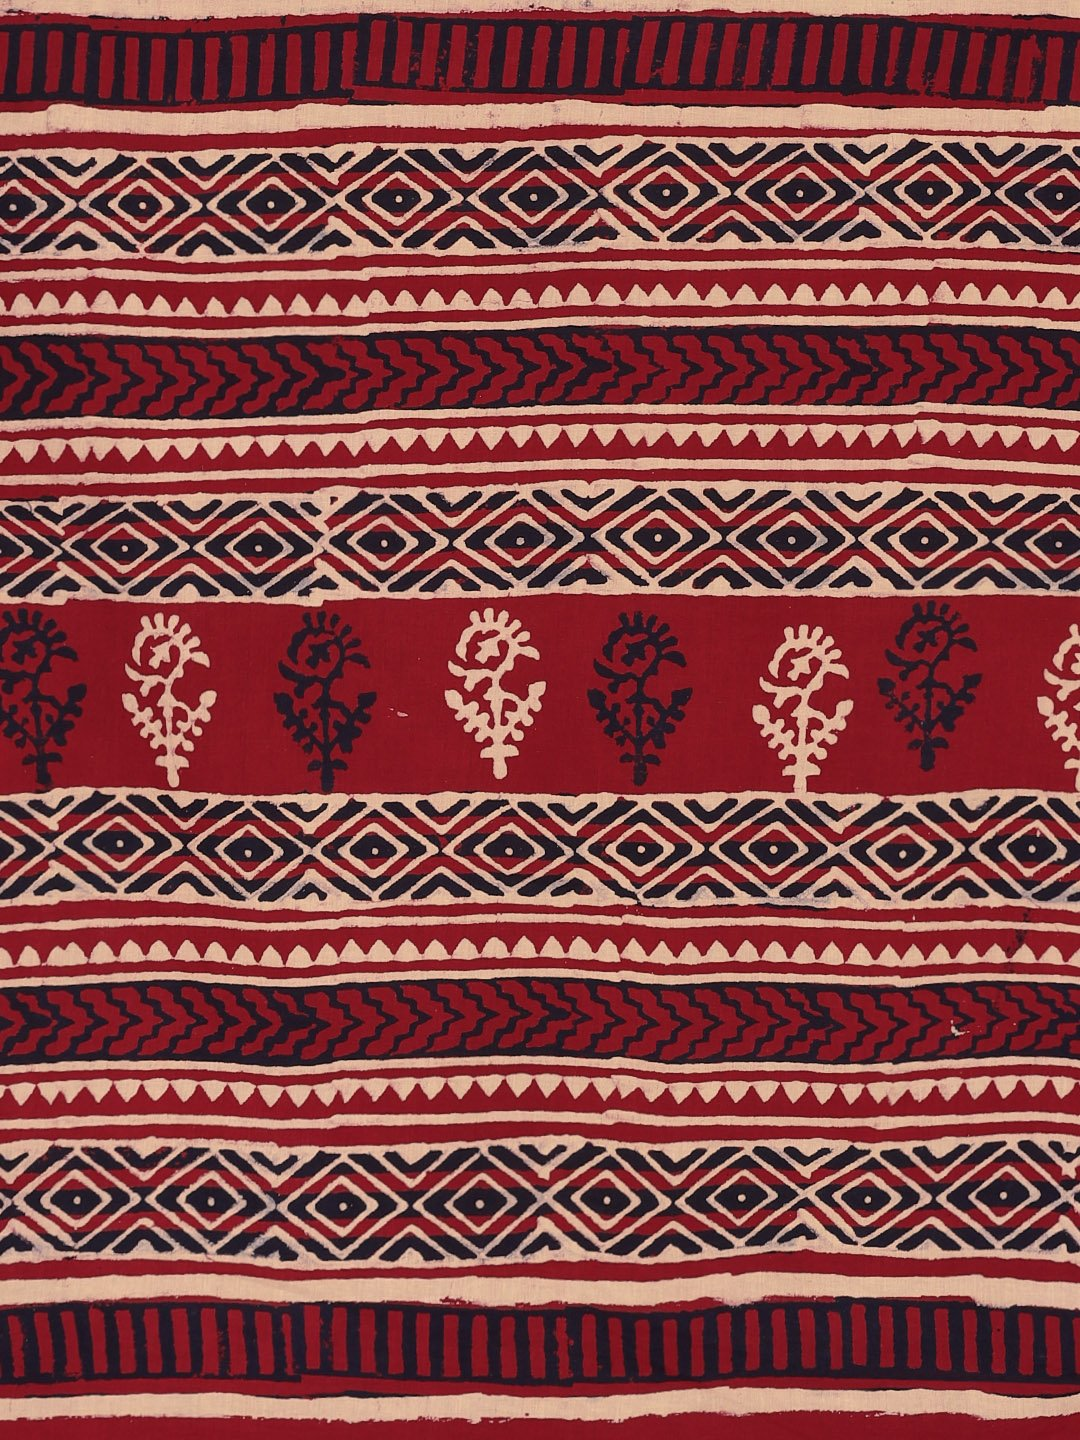 Red & Beige Mud Resist Handblock Print Batik Handcrafted Cotton Saree-Saree-Kalakari India-BHKPSA0033-Batik, Cotton, Geographical Indication, Hand Blocks, Hand Crafted, Heritage Prints, Sarees, Sustainable Fabrics-[Linen,Ethnic,wear,Fashionista,Handloom,Handicraft,Indigo,blockprint,block,print,Cotton,Chanderi,Blue, latest,classy,party,bollywood,trendy,summer,style,traditional,formal,elegant,unique,style,hand,block,print, dabu,booti,gift,present,glamorous,affordable,collectible,Sari,Saree,printed